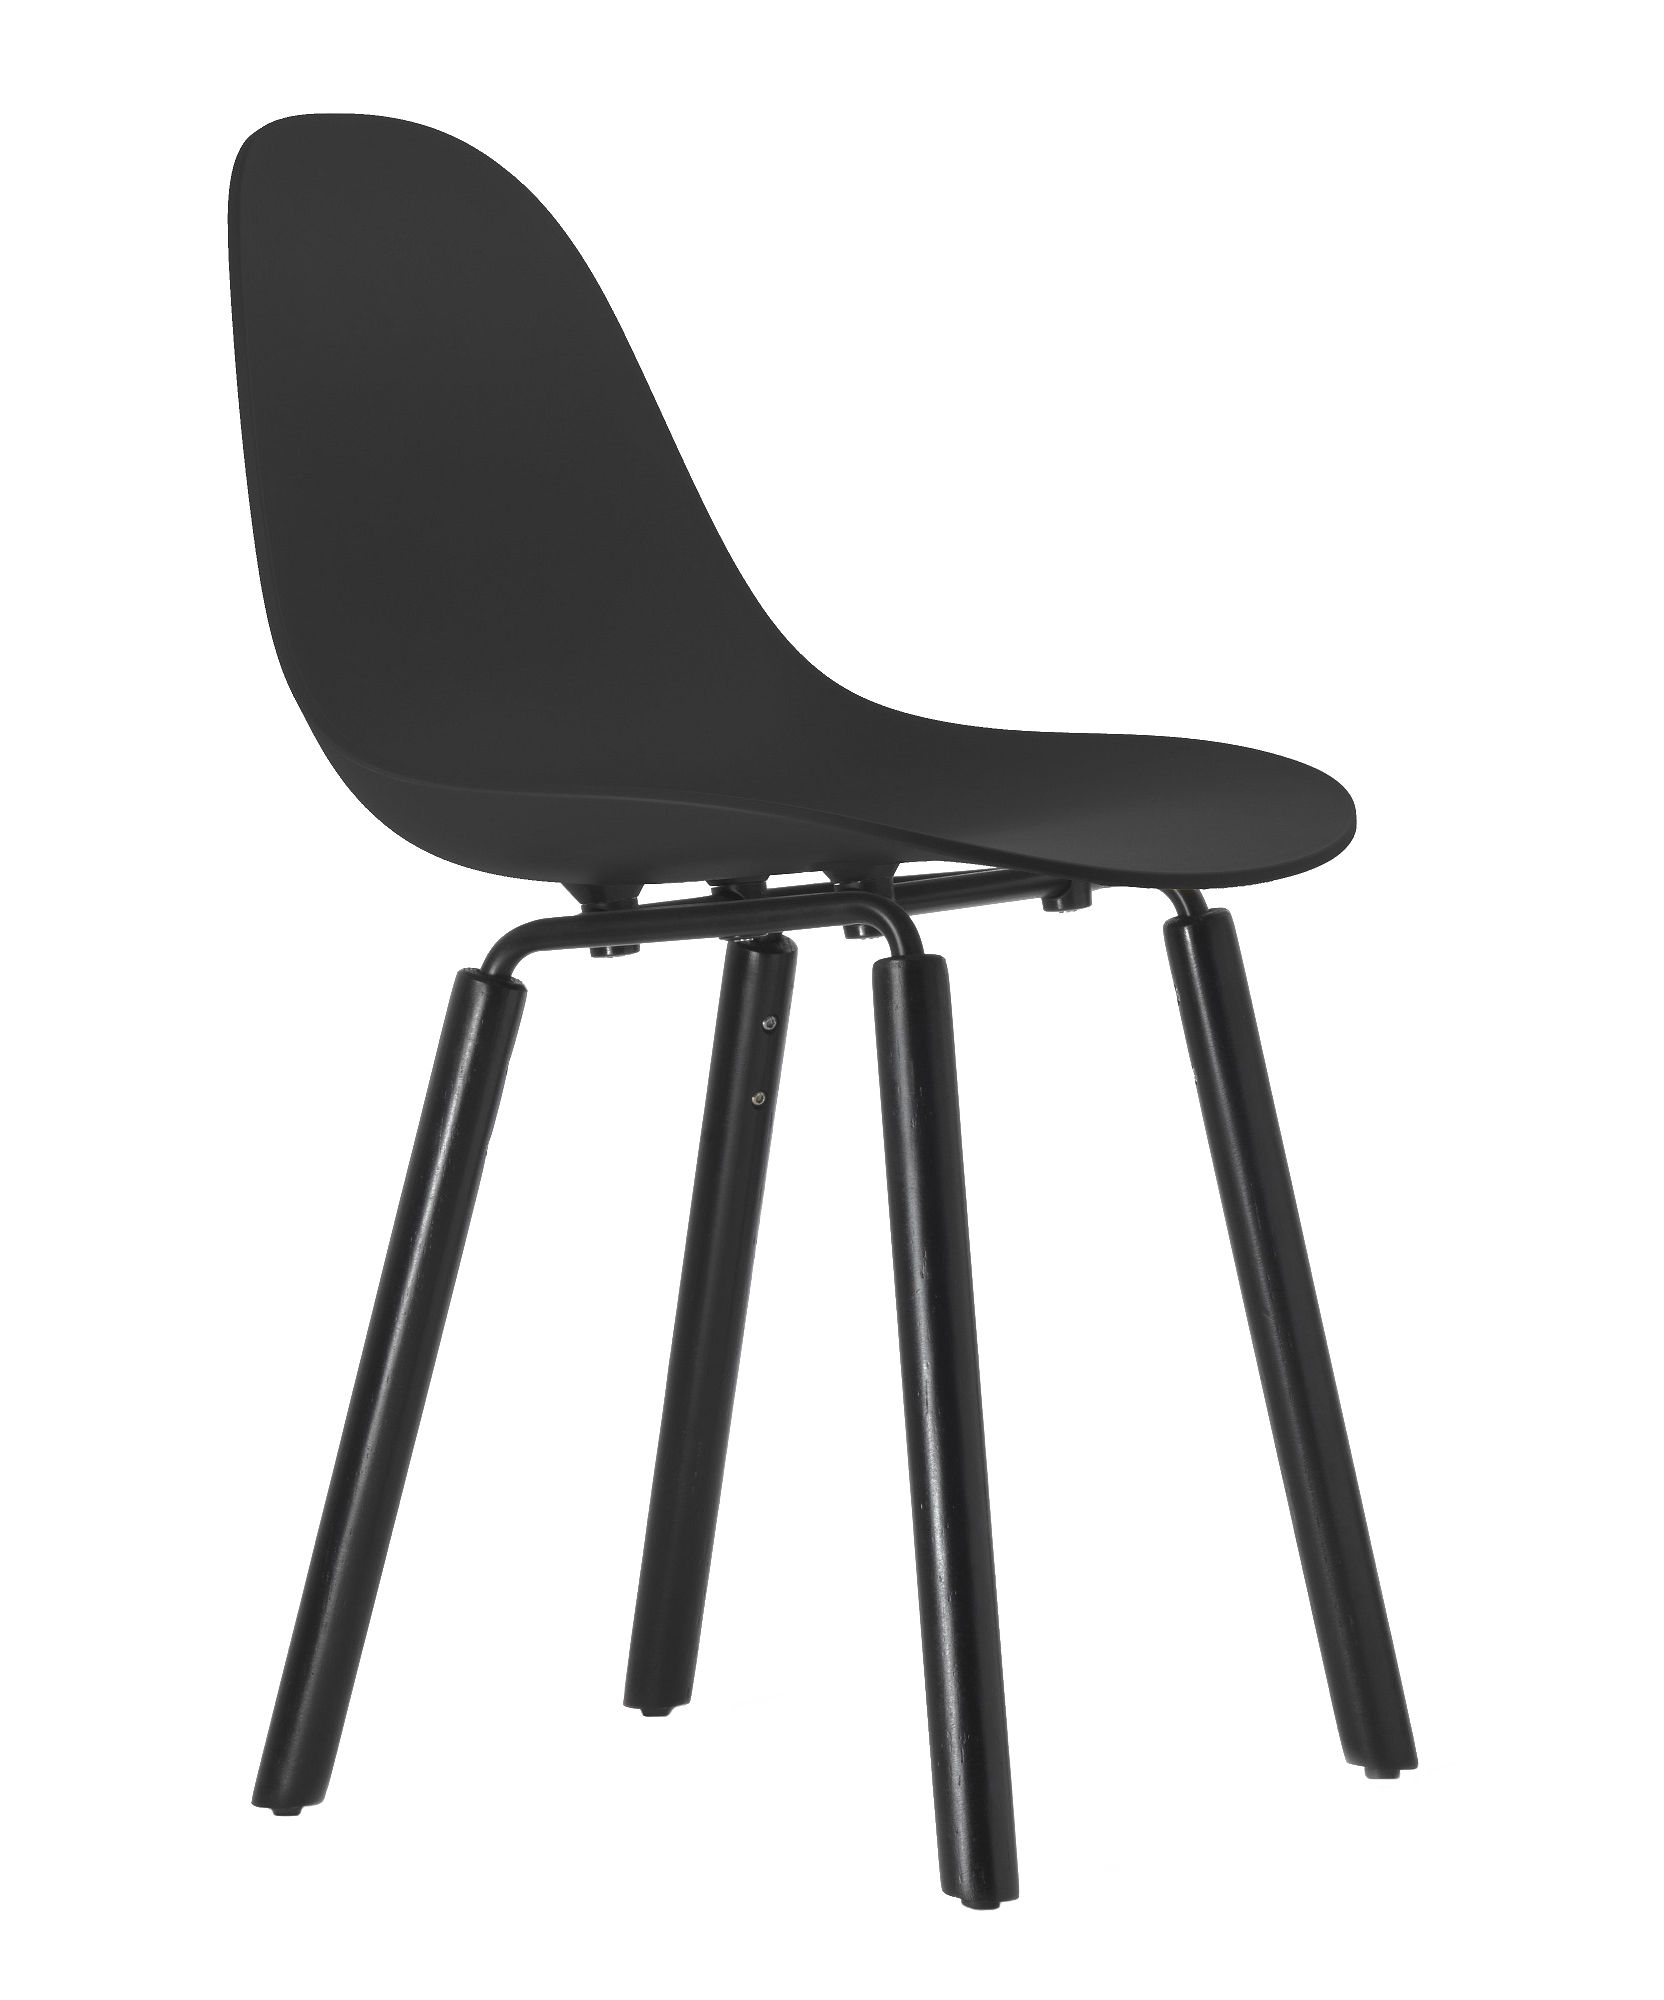 Furniture - Chairs - TA Chair - Wood legs by Toou - Black / Black legs - Lacquered metal, Painted oak, Polypropylene